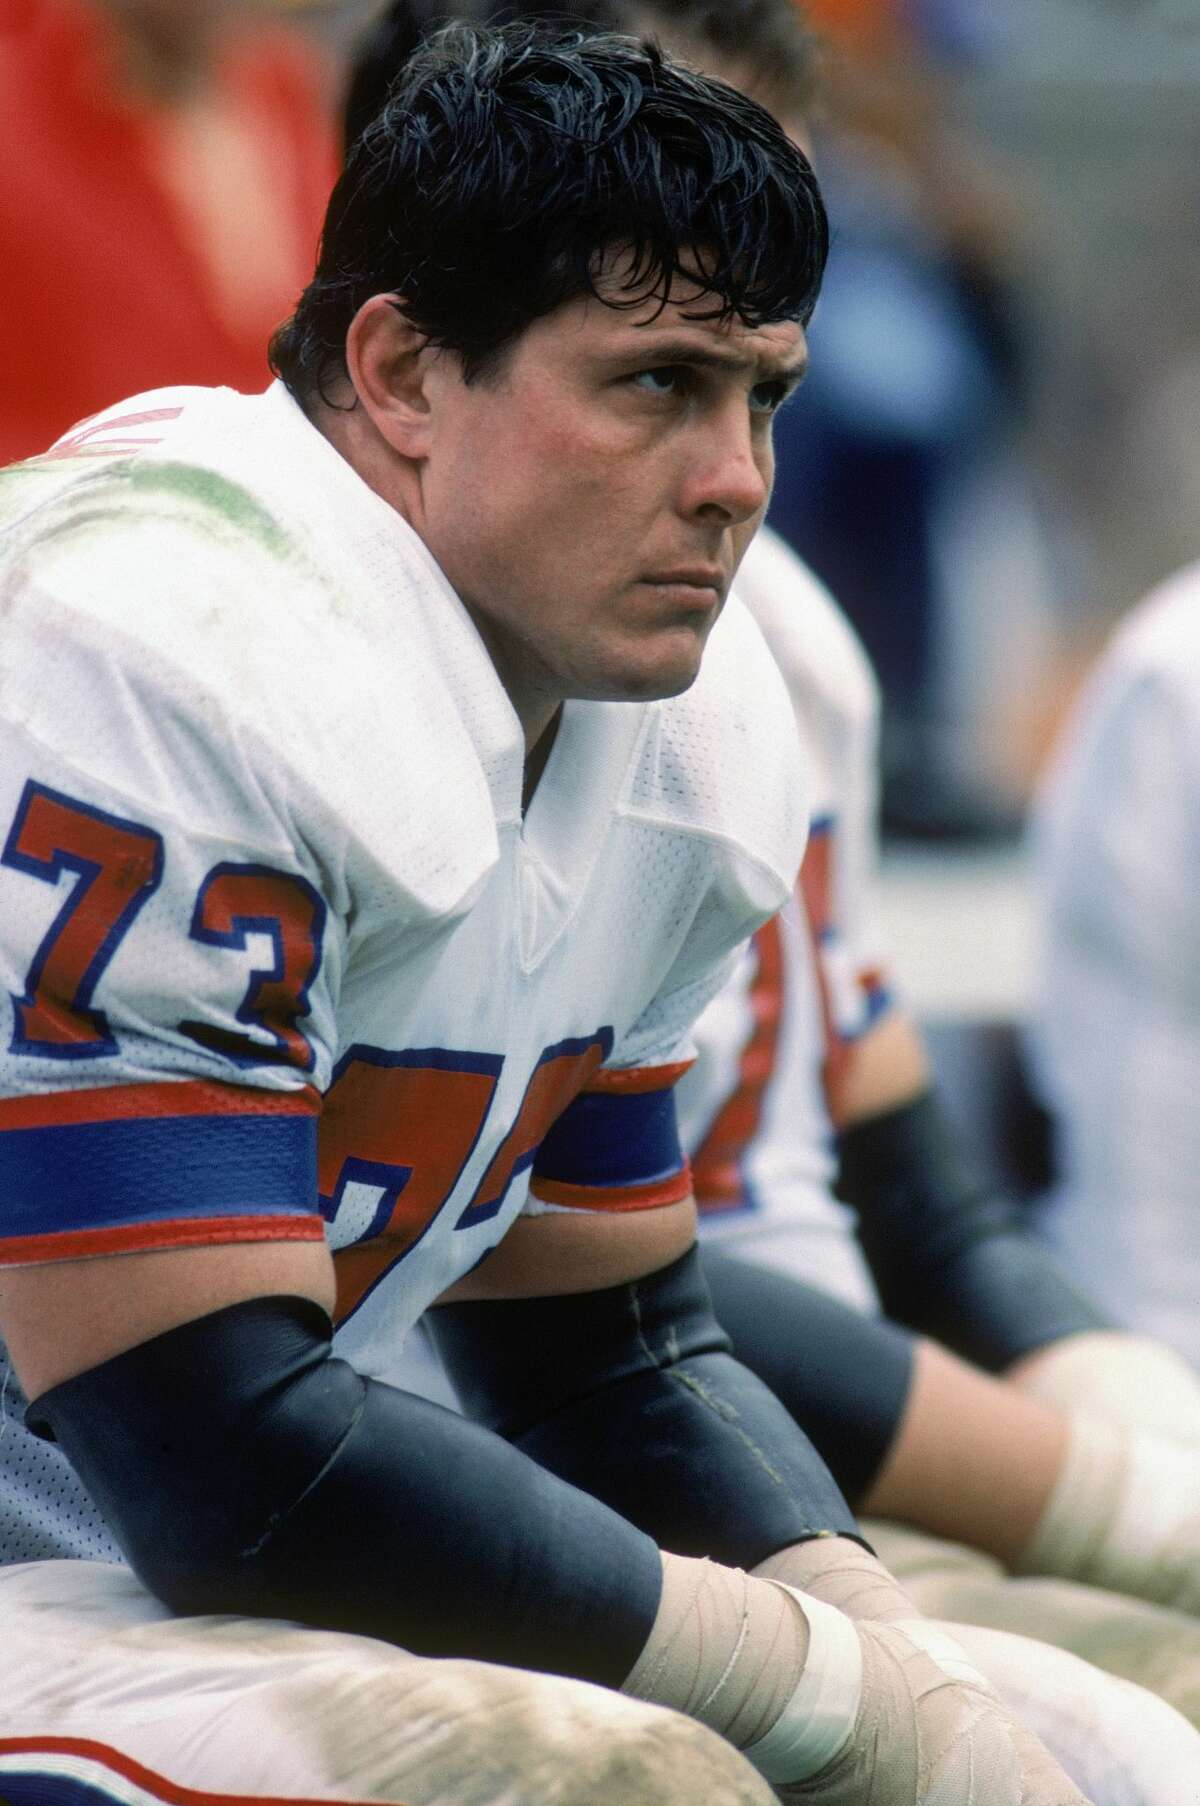 Iconic Patriots player from early era: John Hannah The Hall of Fame guard shined on some sad-sack Patriots squads from 1973-85. The team retired his No. 73.